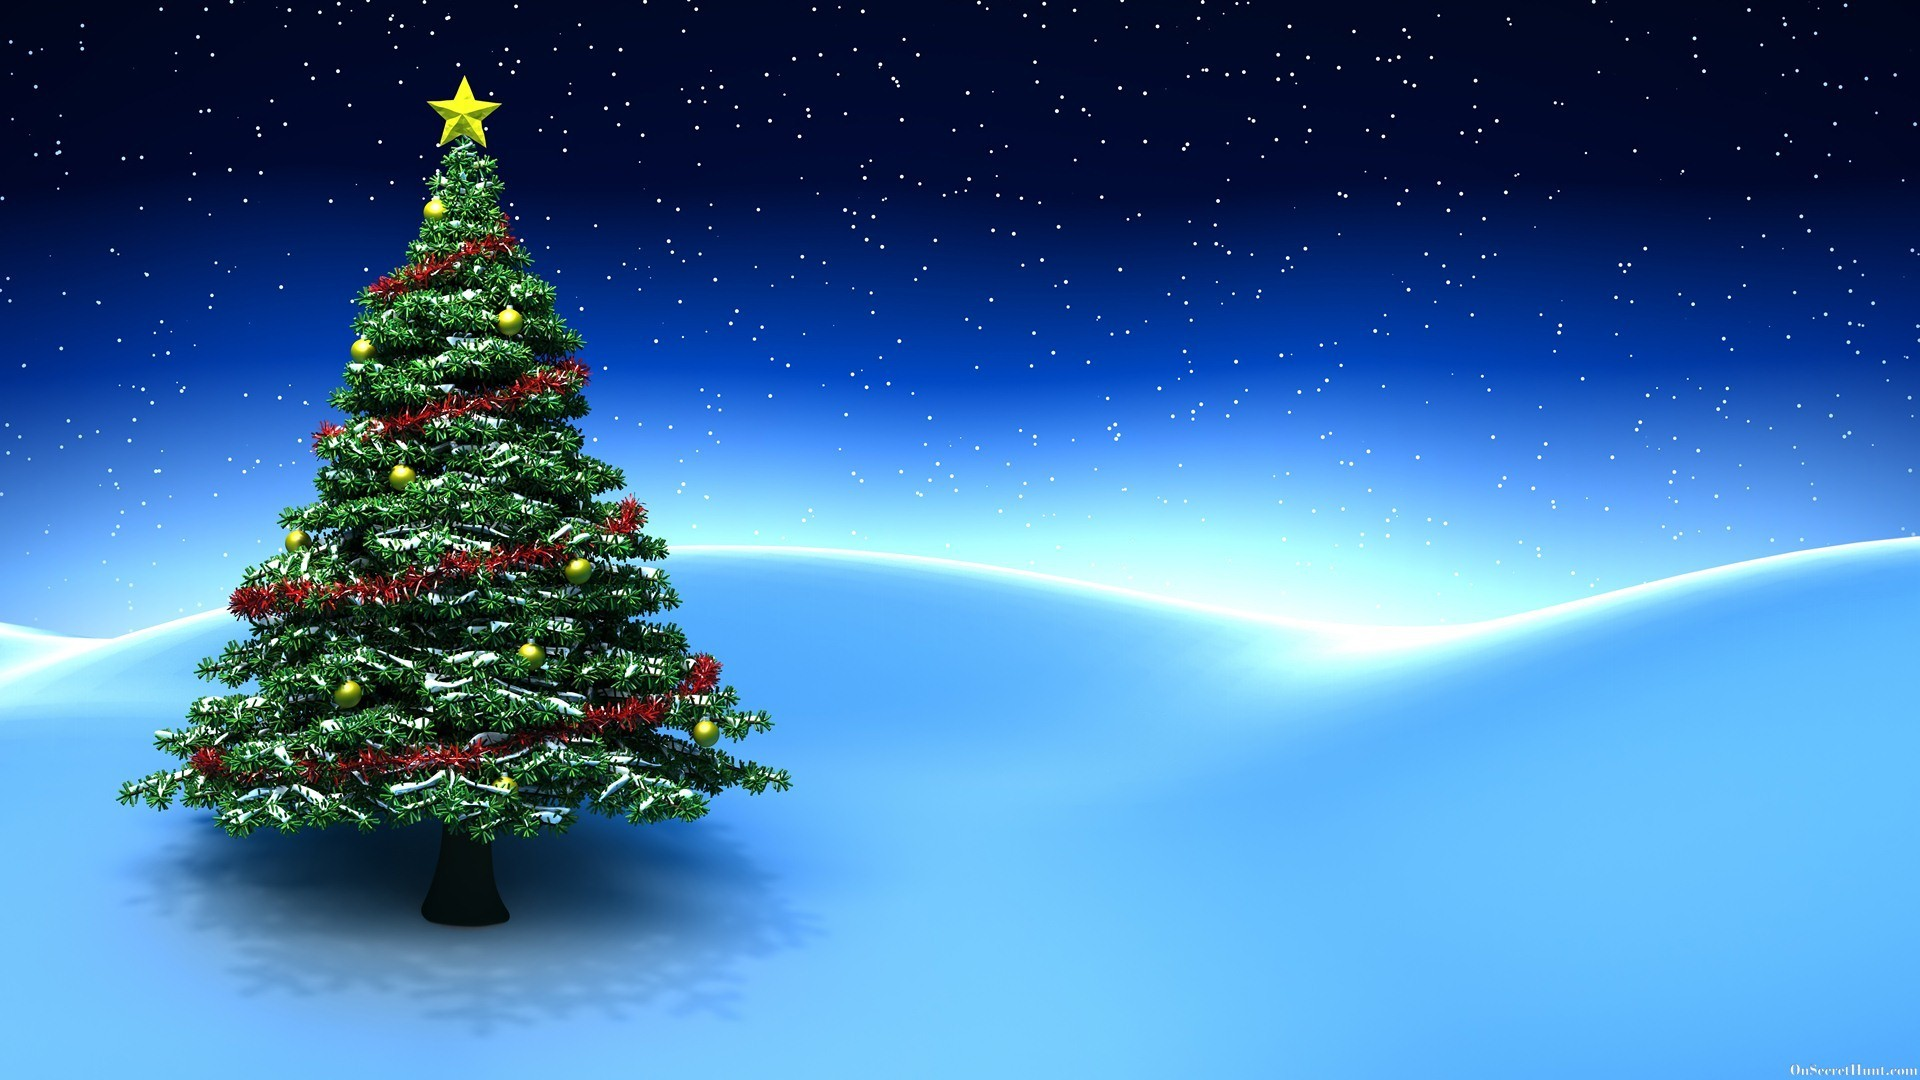 1920x1080 3D Christmas Tree Blue Background Desktop Wallpaper